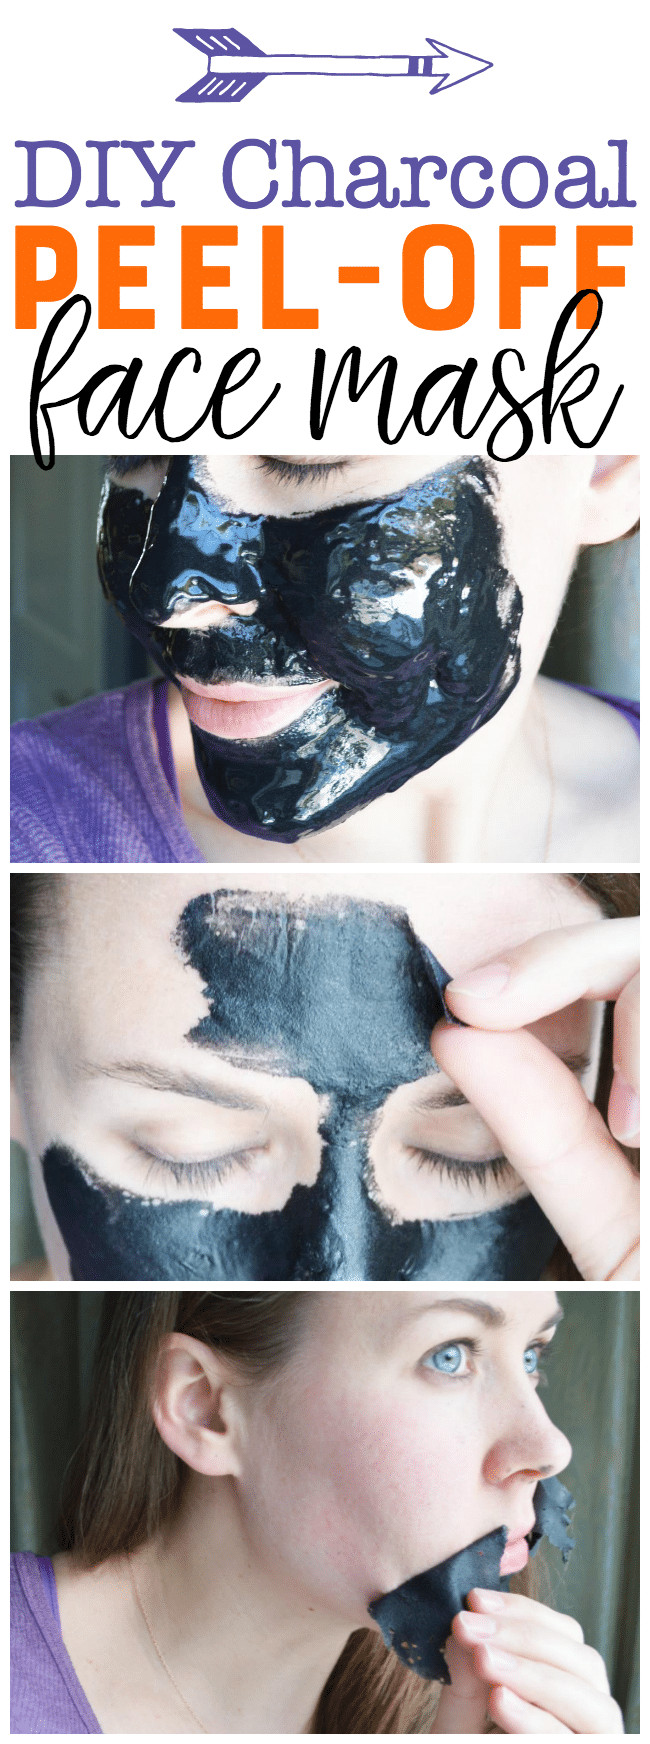 DIY Charcoal Face Mask  DIY Charcoal Peel f Mask Easy Blackhead Busting Mask